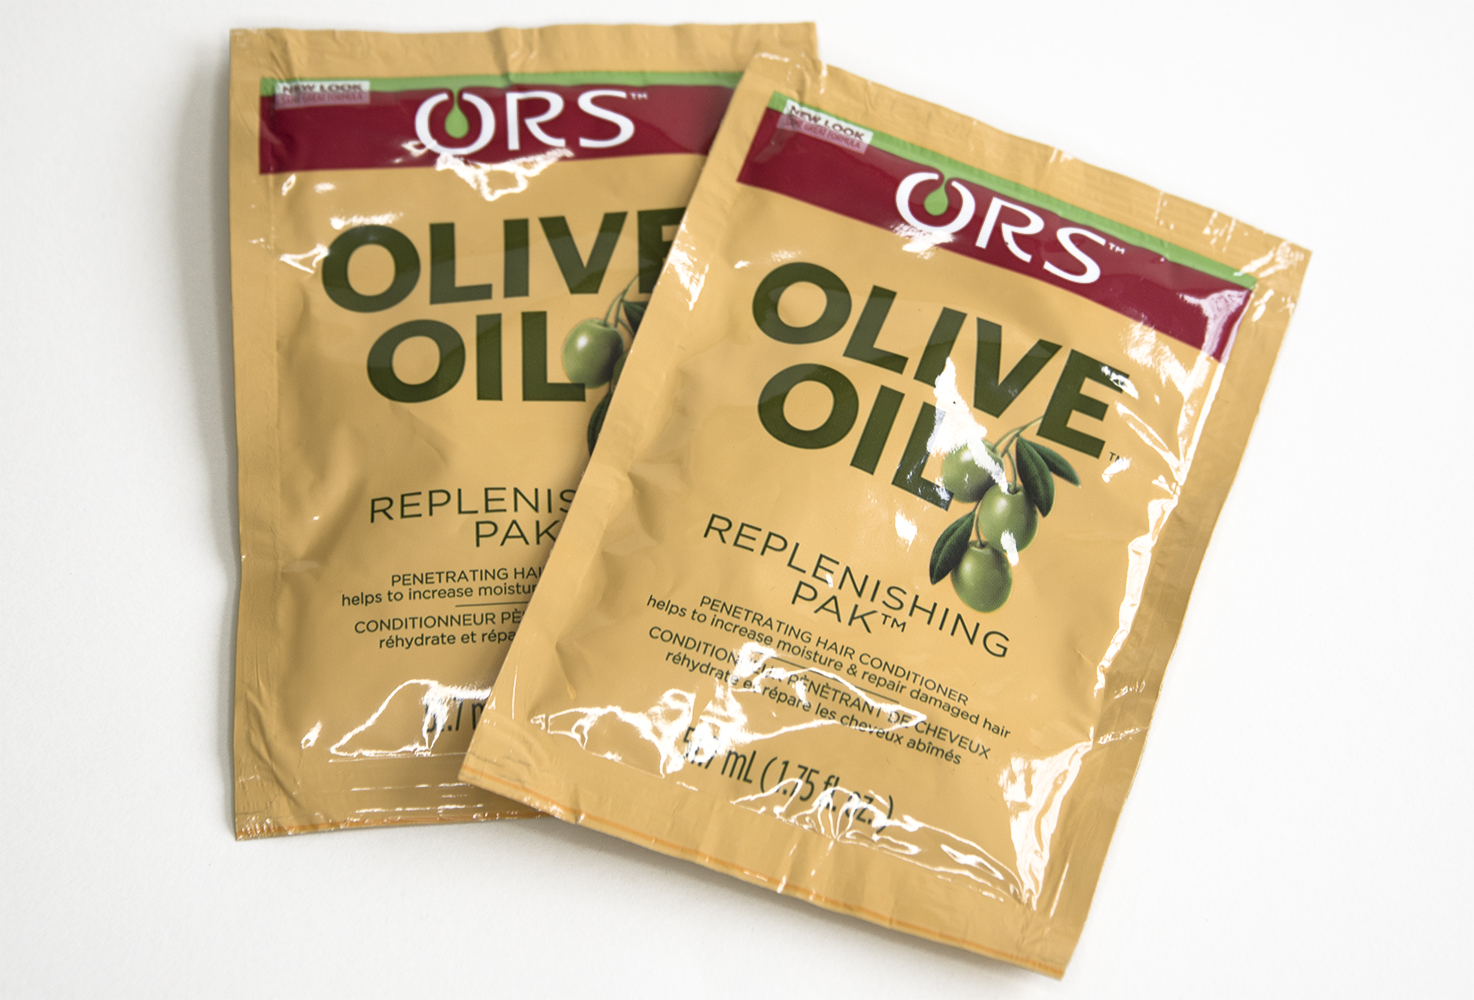 Olive Oil Replenishing Pak